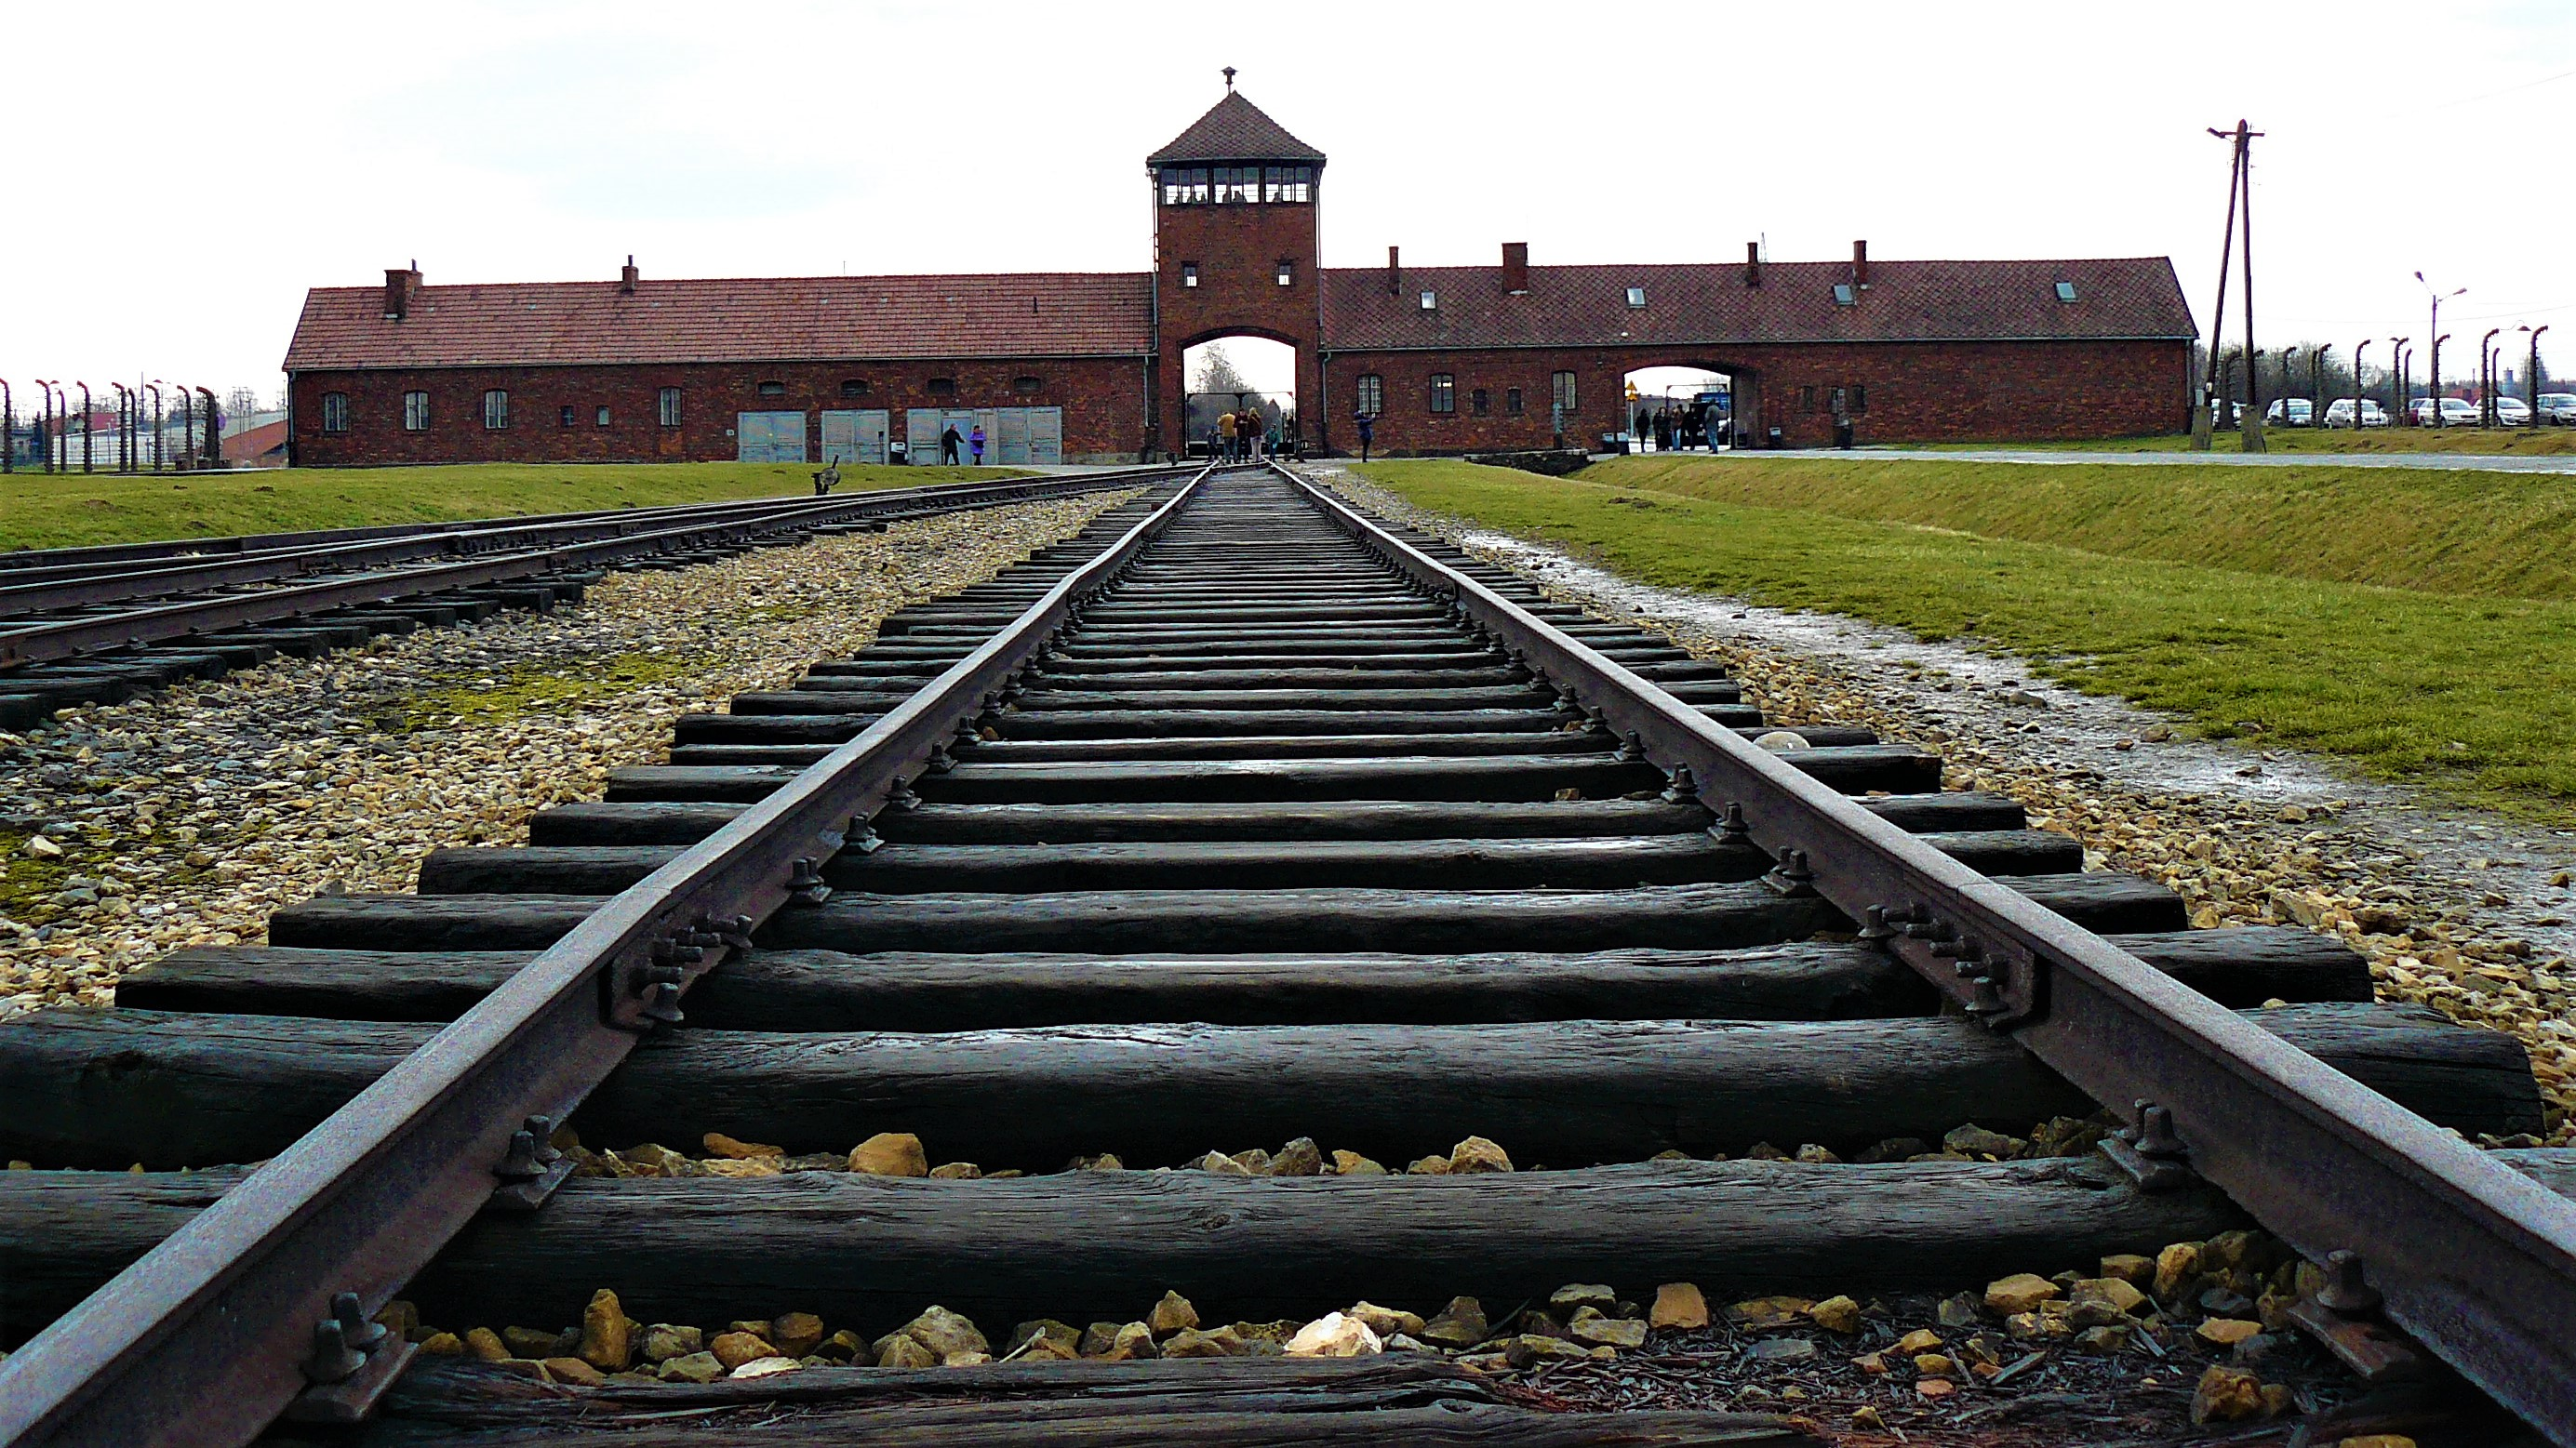 6 auschwitz camp concentration visite pologne voyage europe train solo